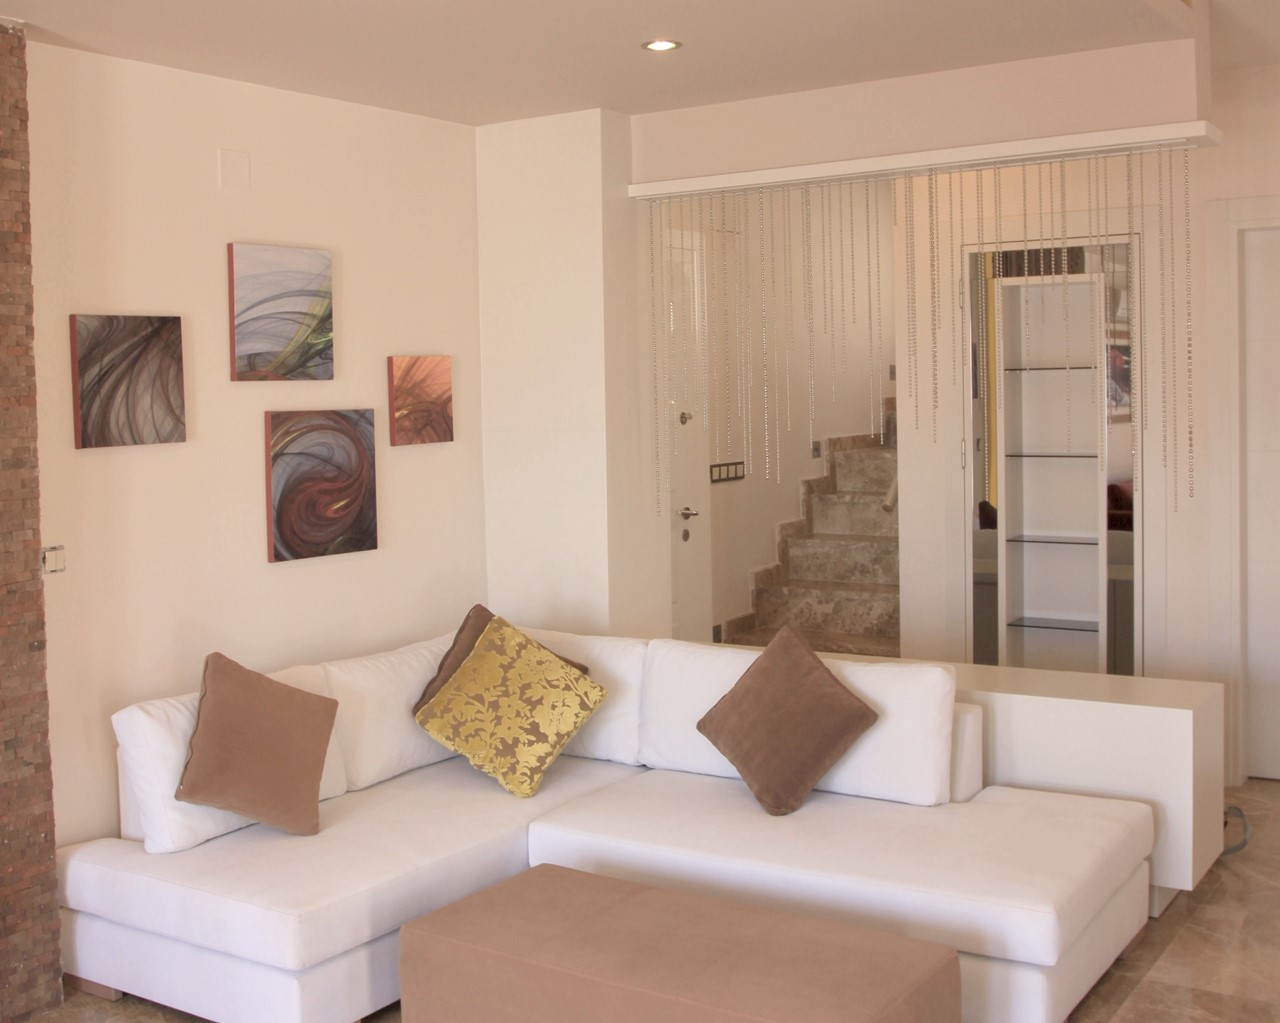 Furnished to a contemporary style